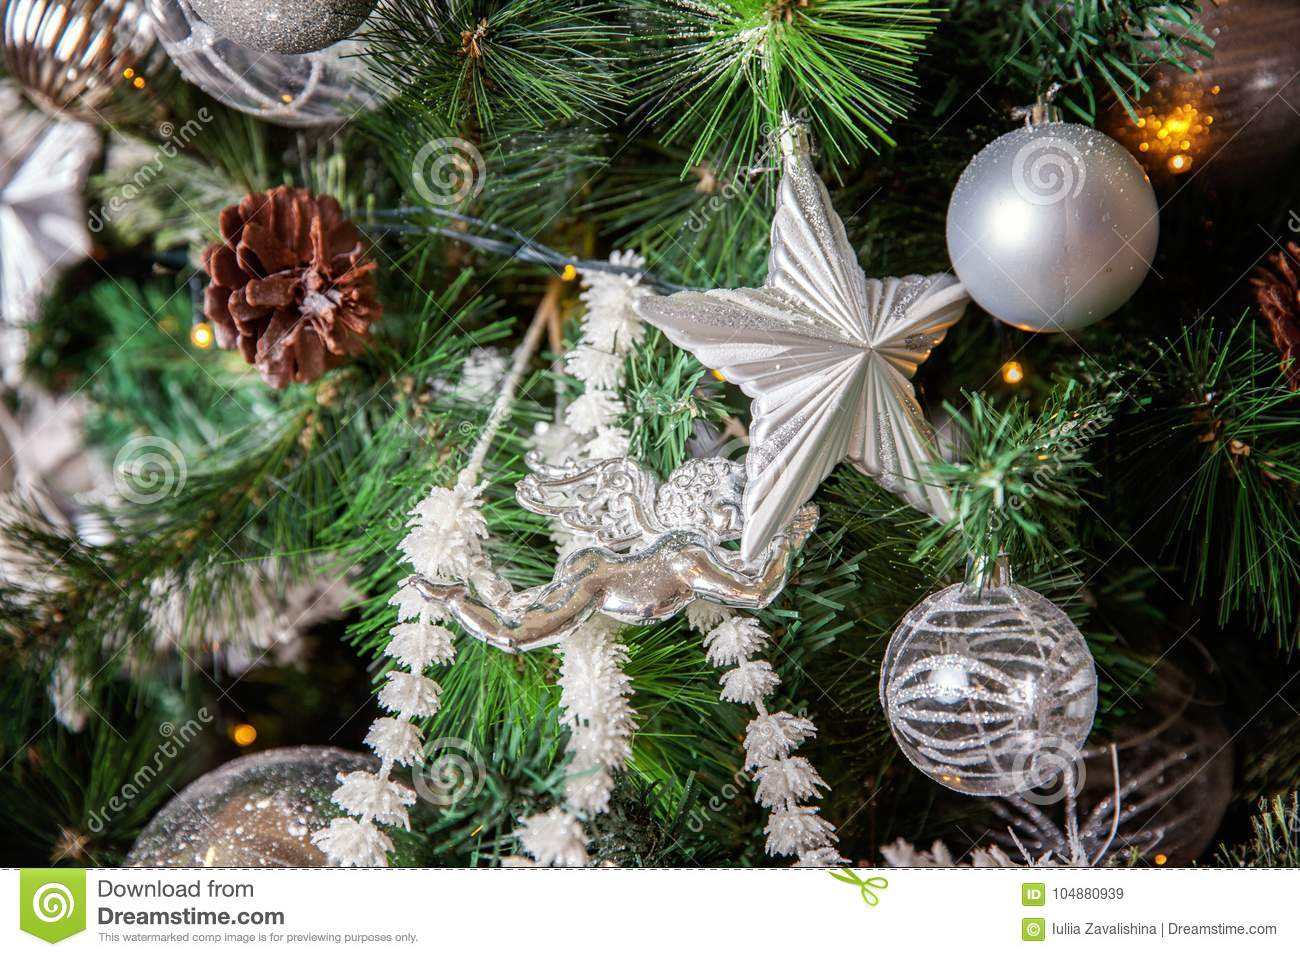 Christmas tree with white and silver decorations stock image image